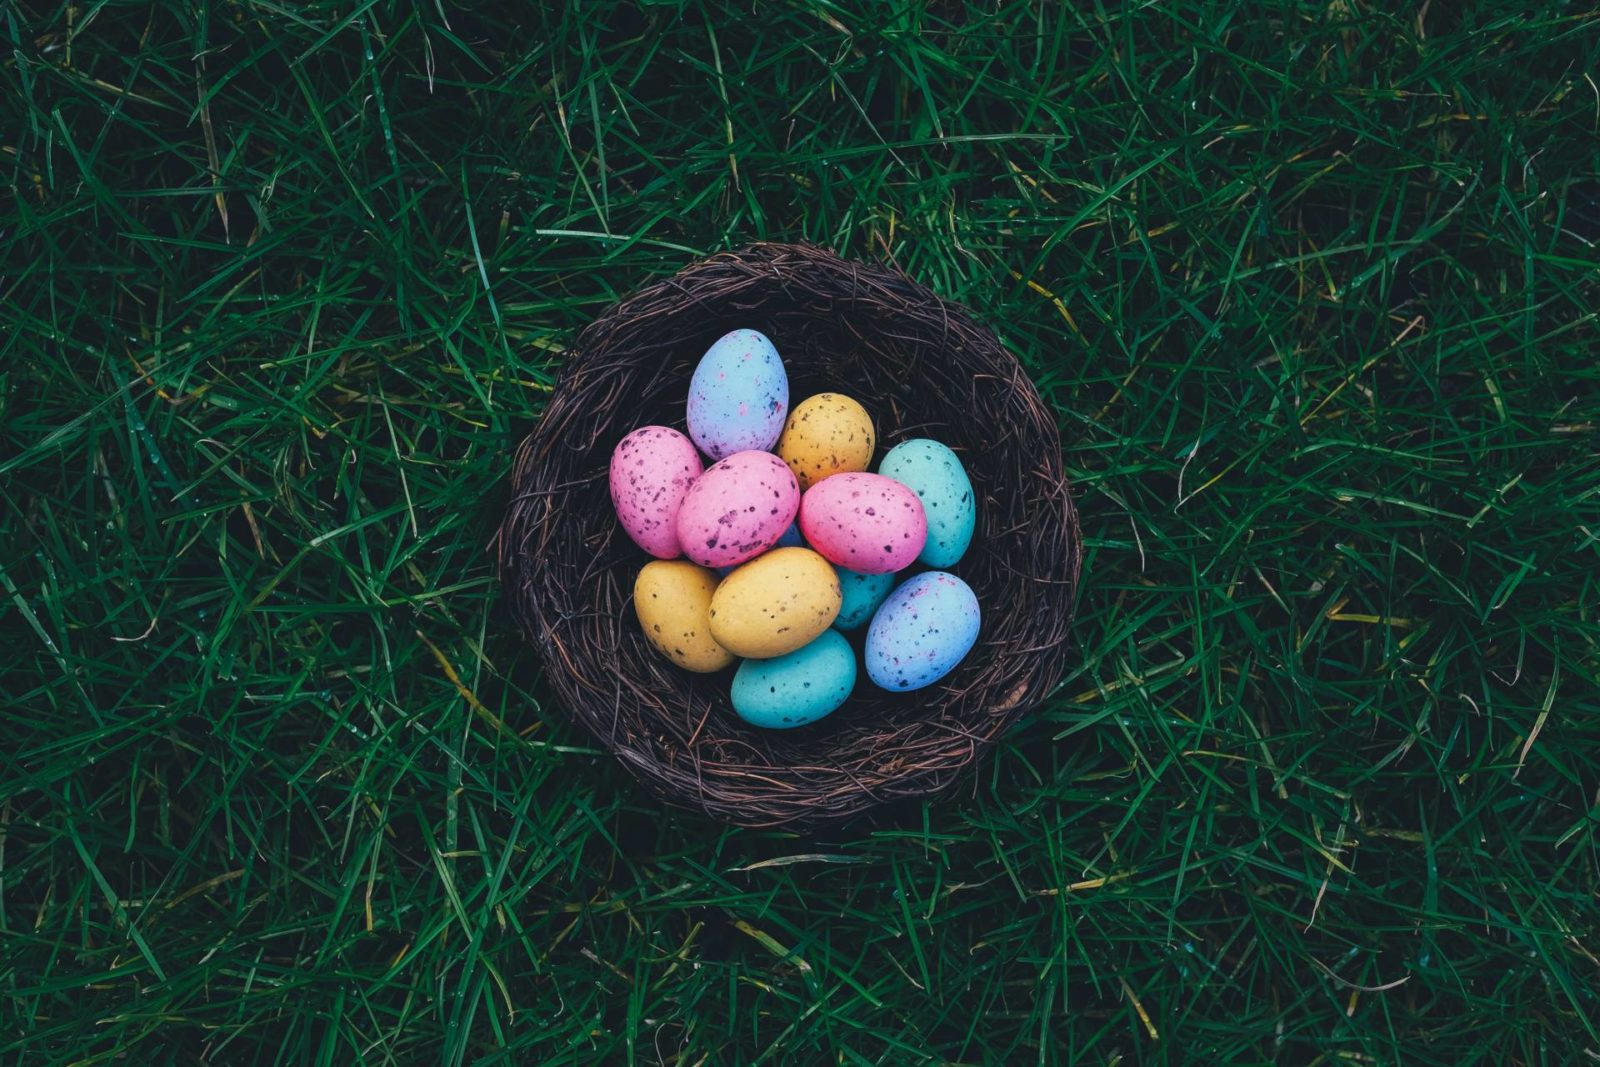 How to put together an Easter Egg hunt